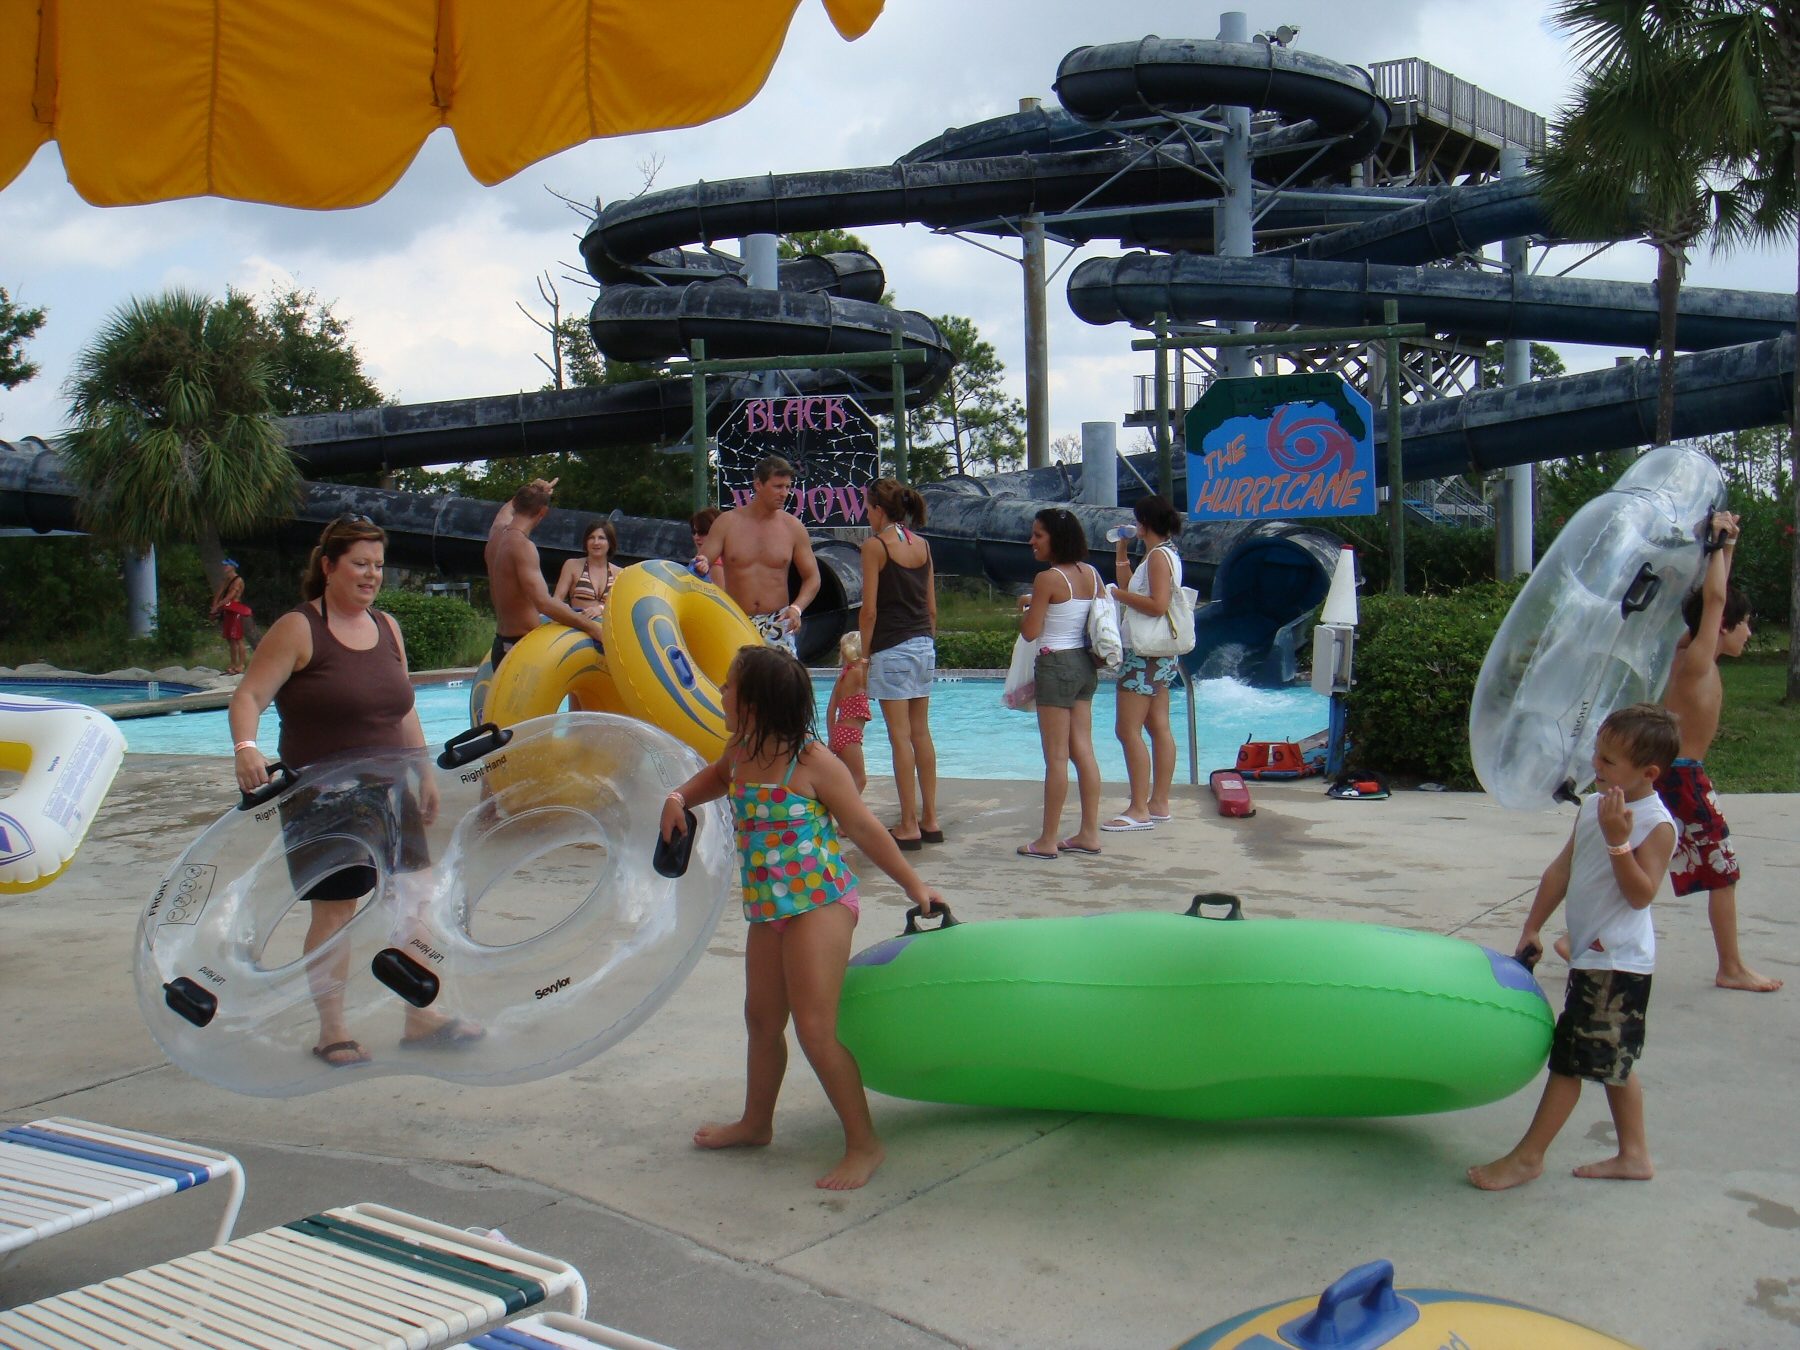 kids walking with pool floats